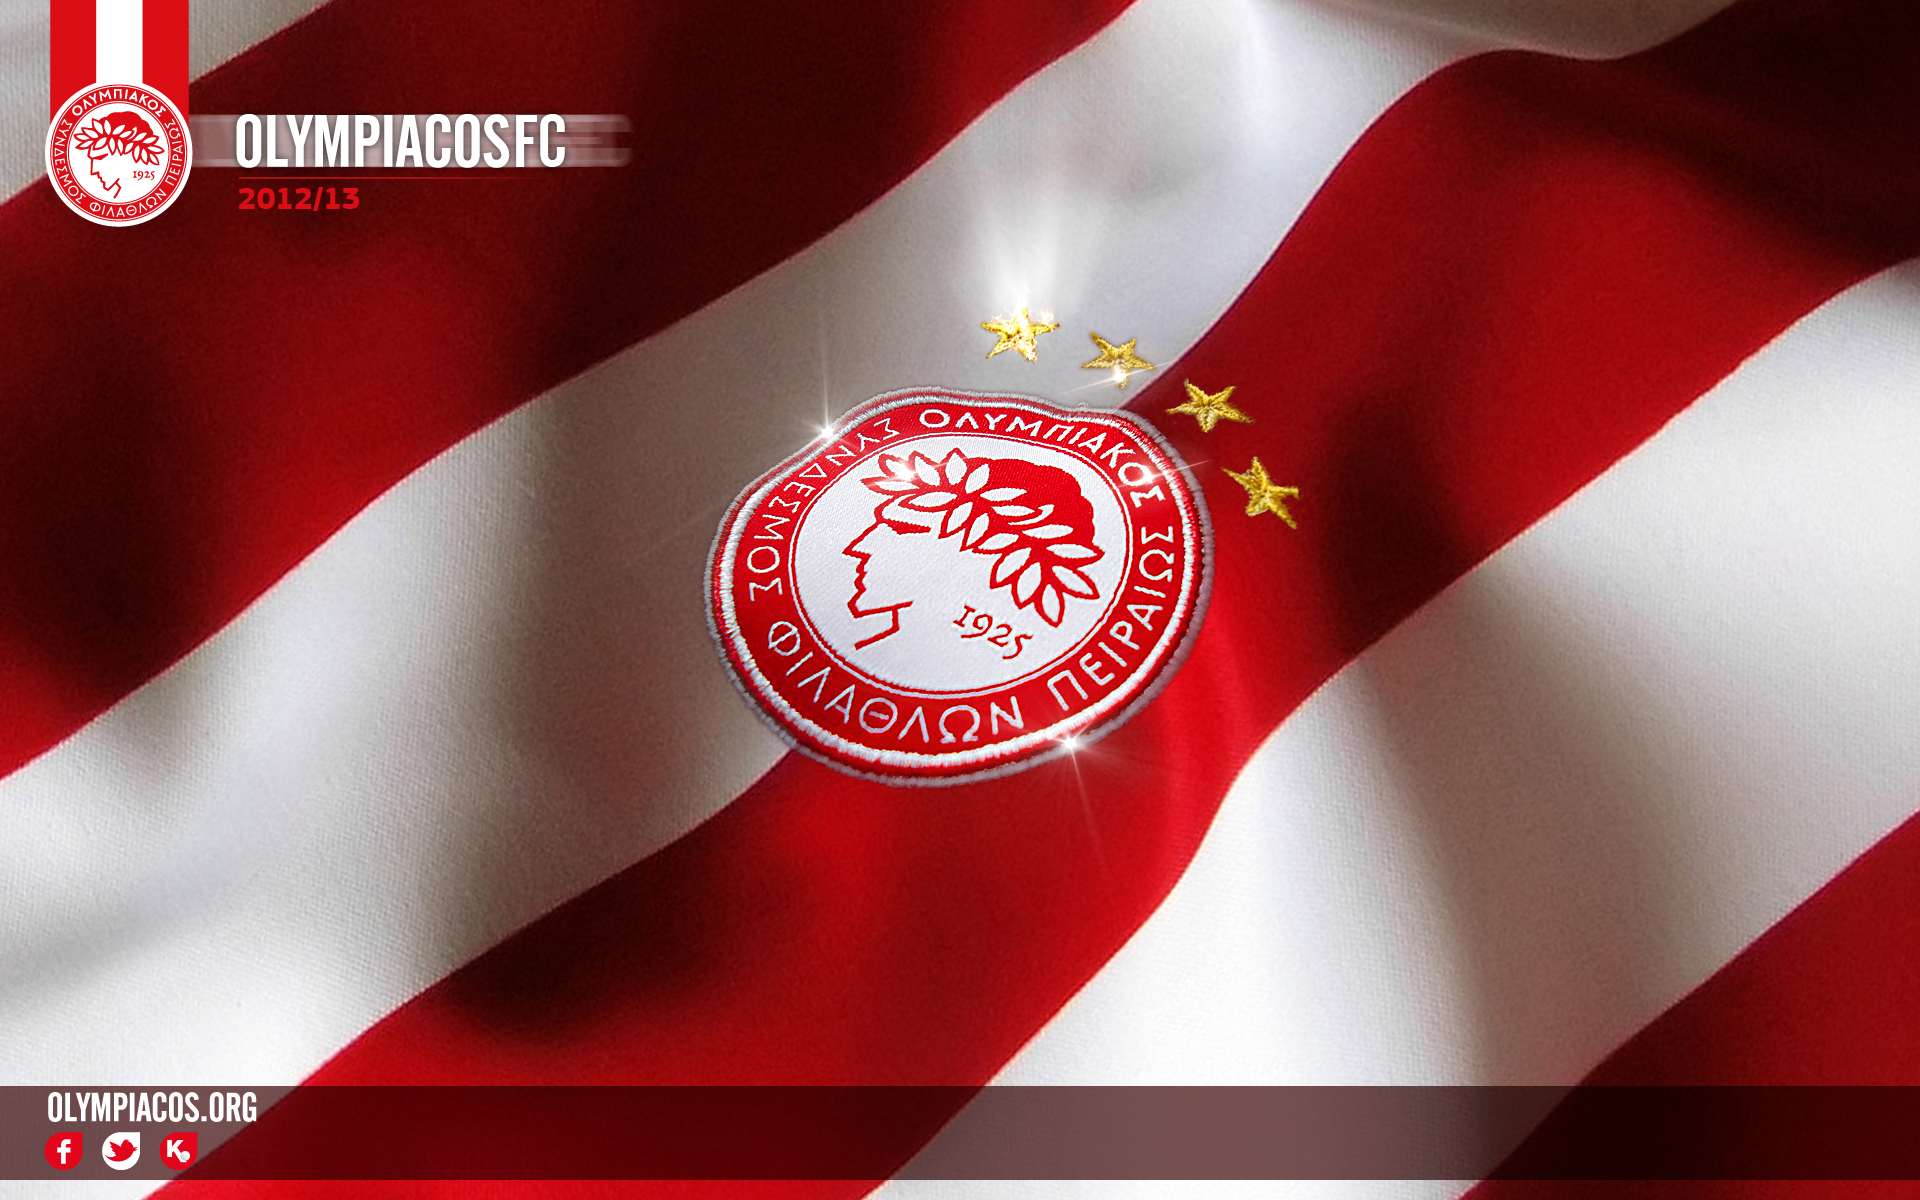 Olympiacos F.C. Wallpaper 4 - 1920 X 1200 | stmed.net